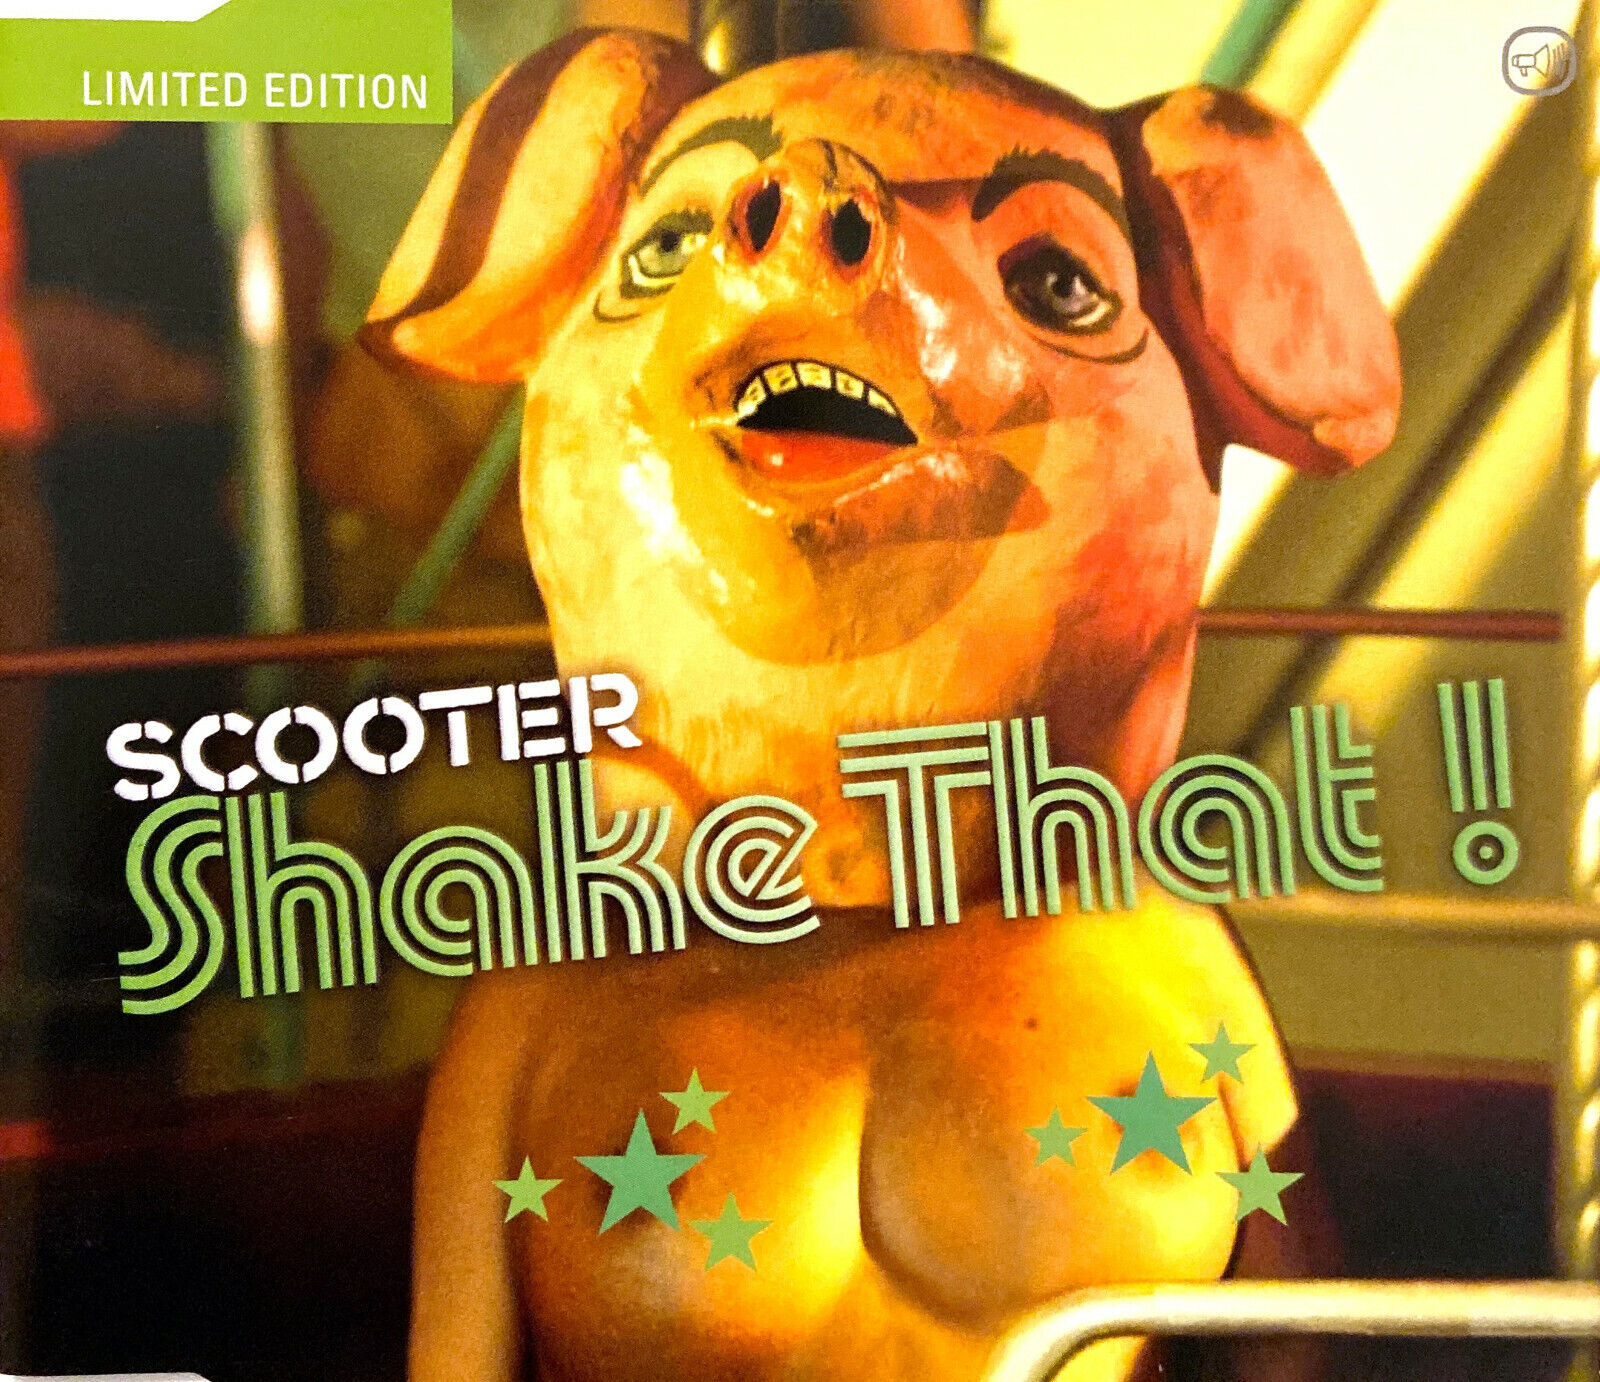 Scooter ‎maxi cd shake that! - limited edition - germany (m/ex+)